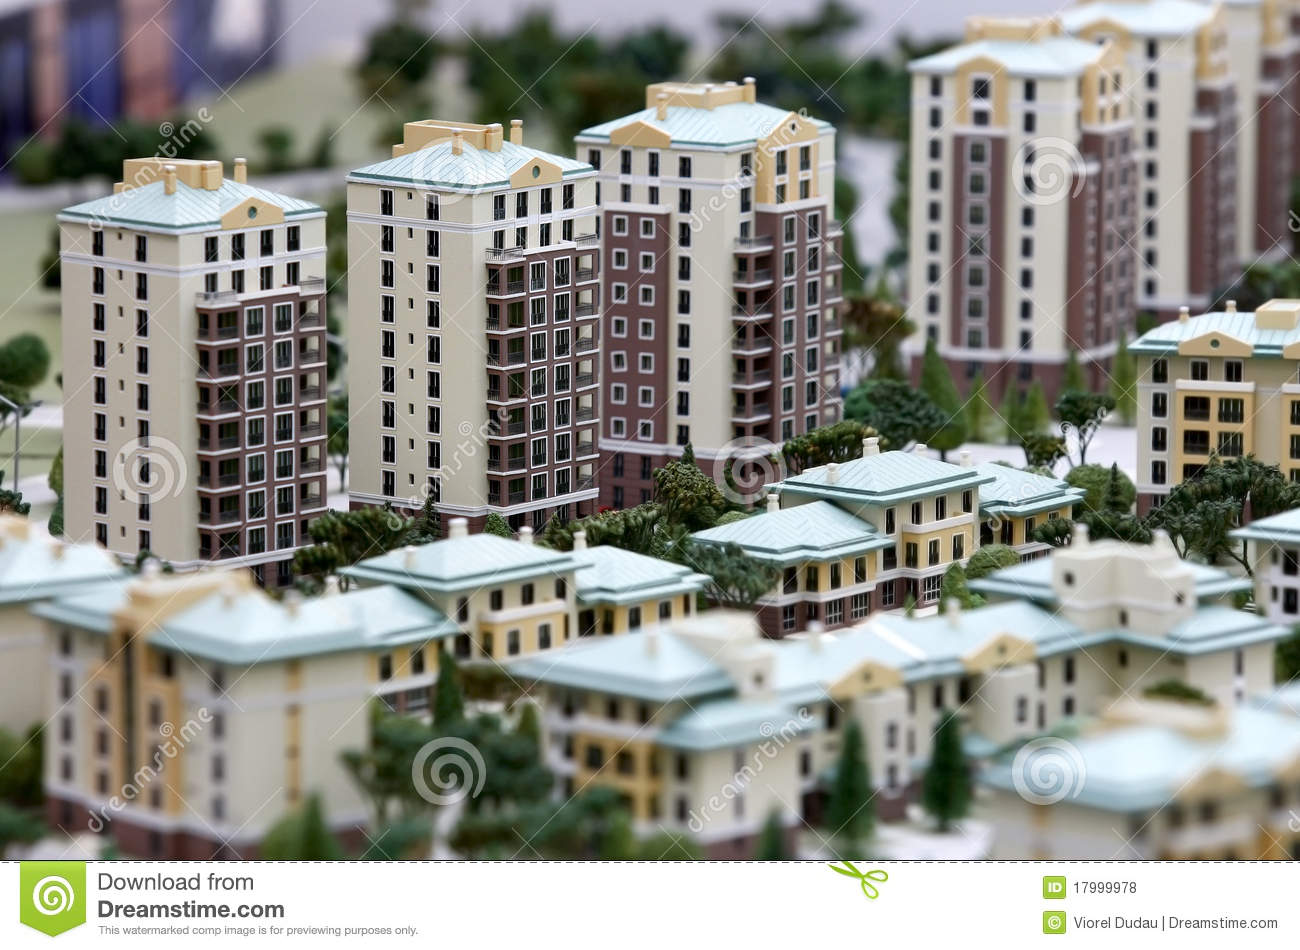 Building miniatures real estate royalty free stock photos for Building an estate